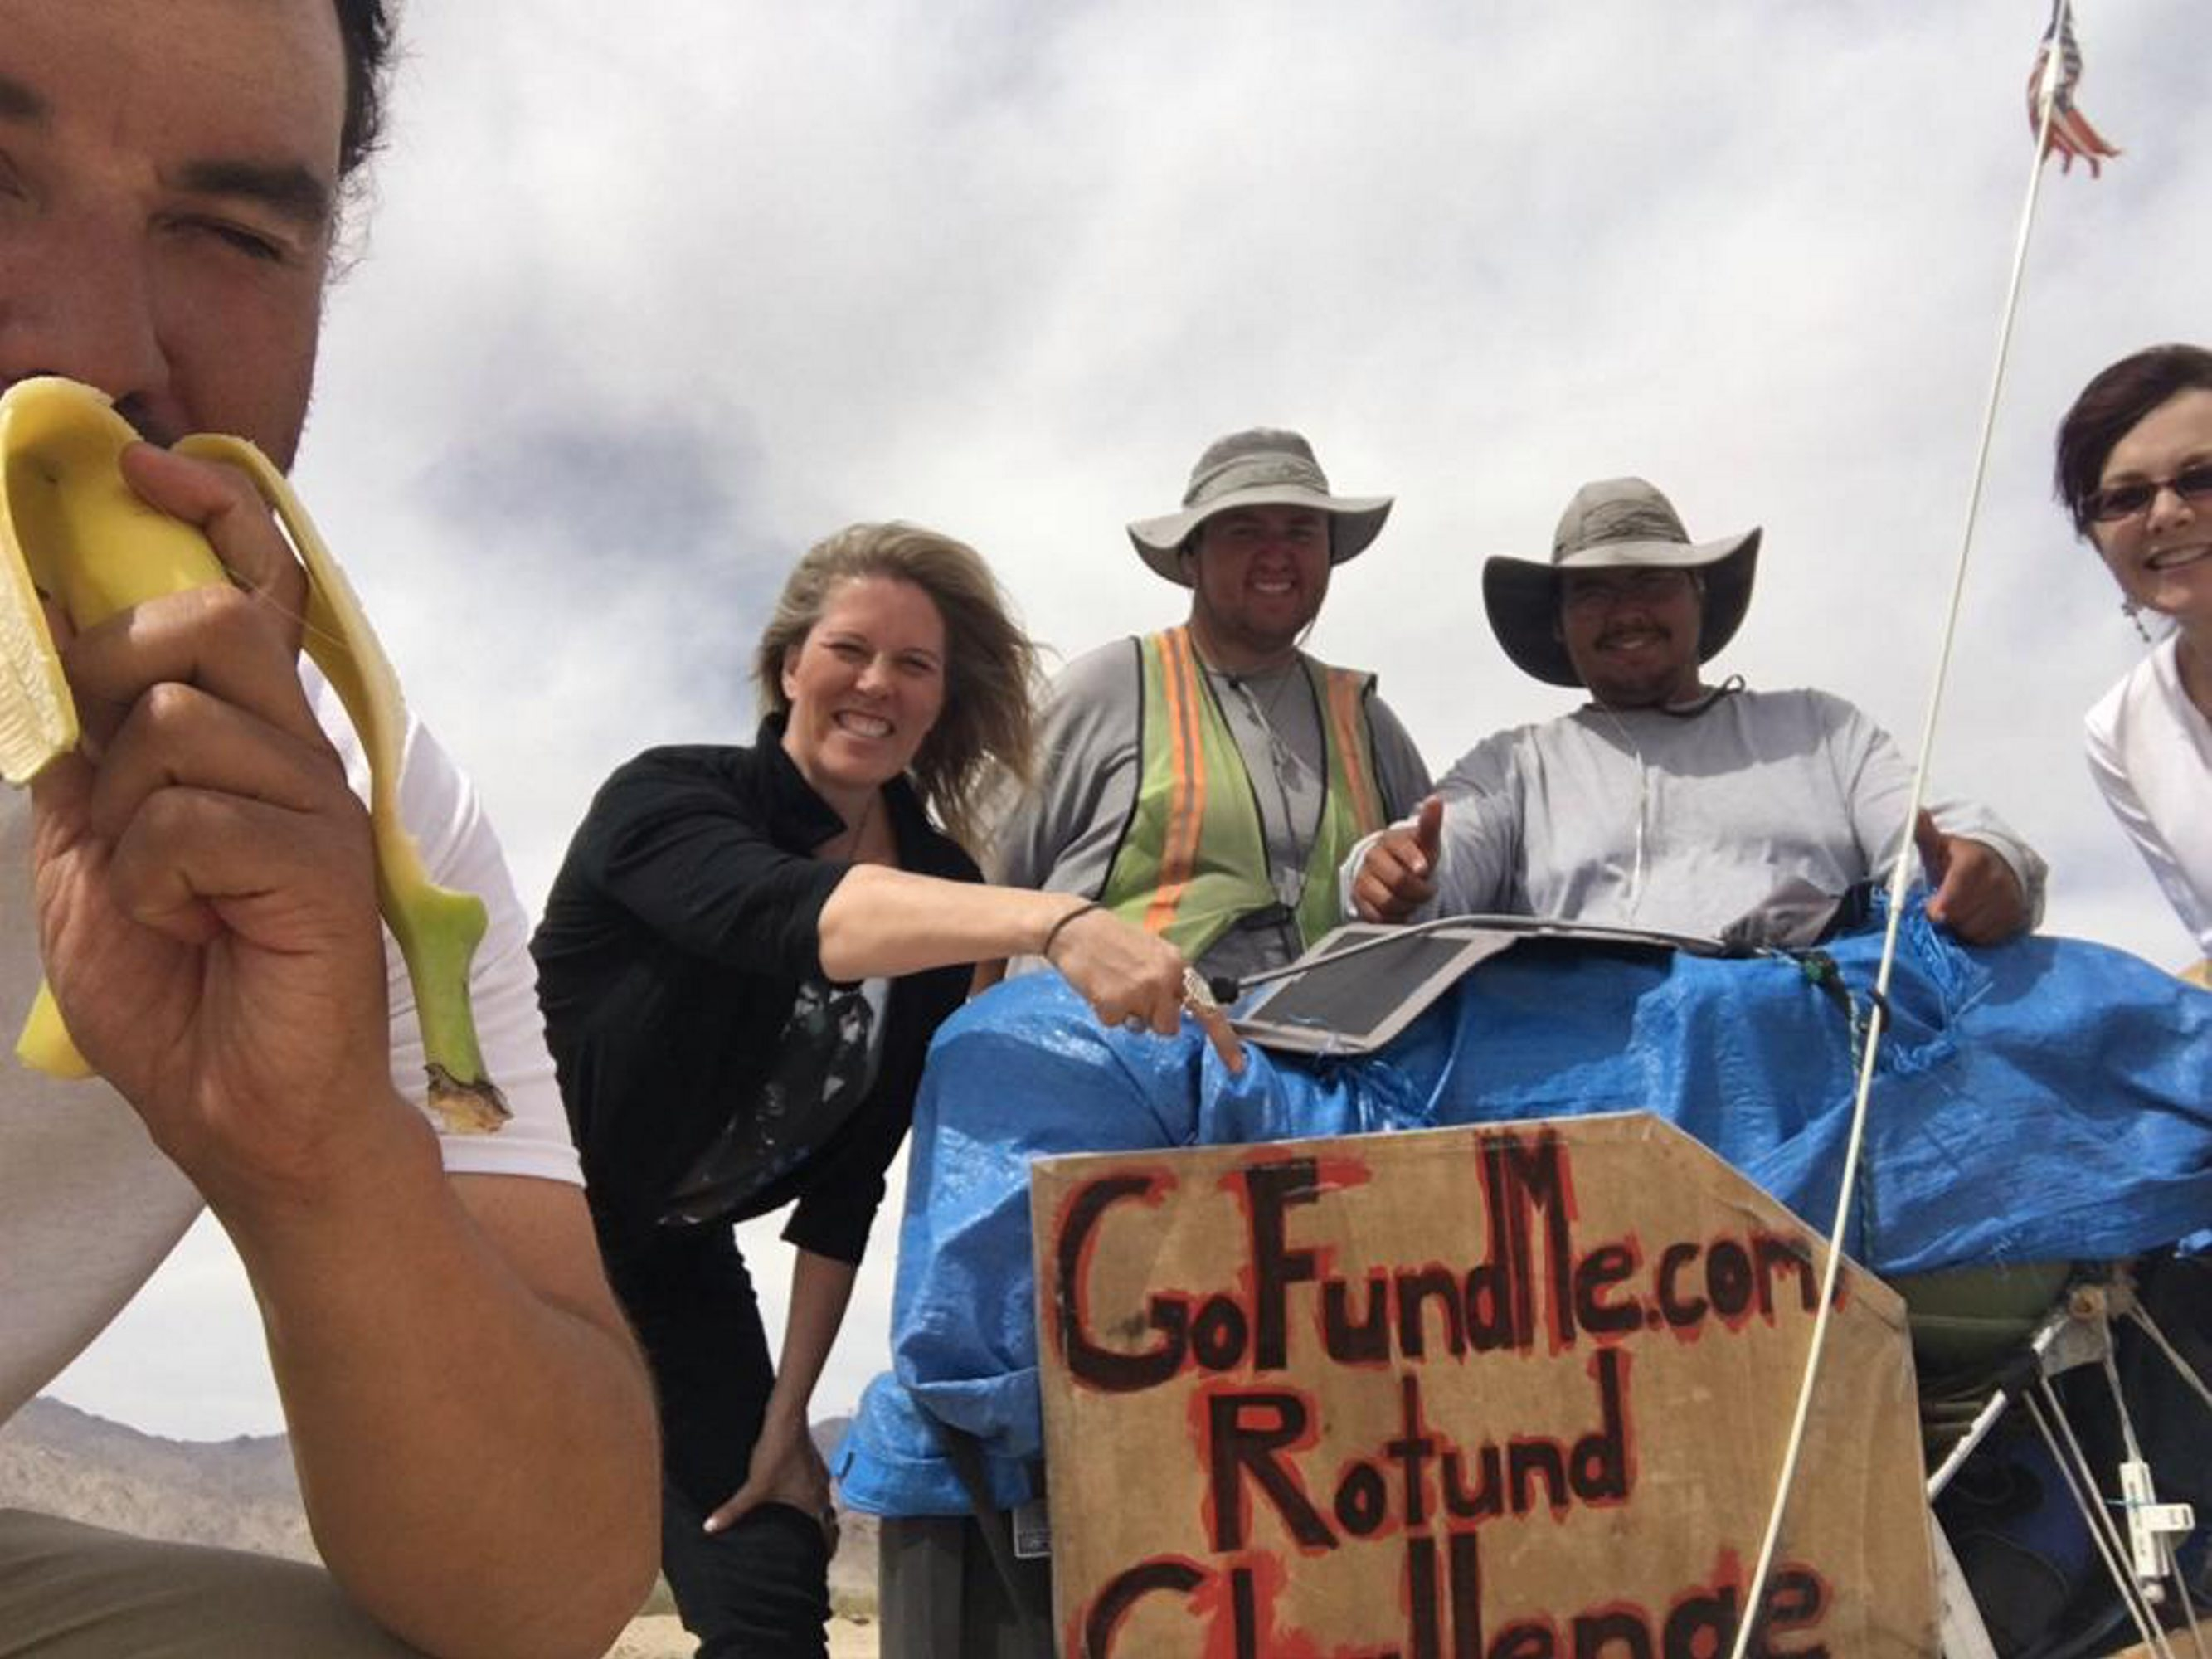 Joe Cooke, left, dug into a banana while Jason Rogers, center, and Chris Cooke, pose for a photo with Lisa Sievenpiper Davis, second from left, and her friend Eden Maureen Becket, who brought food and water to the three walkers. (File photo)